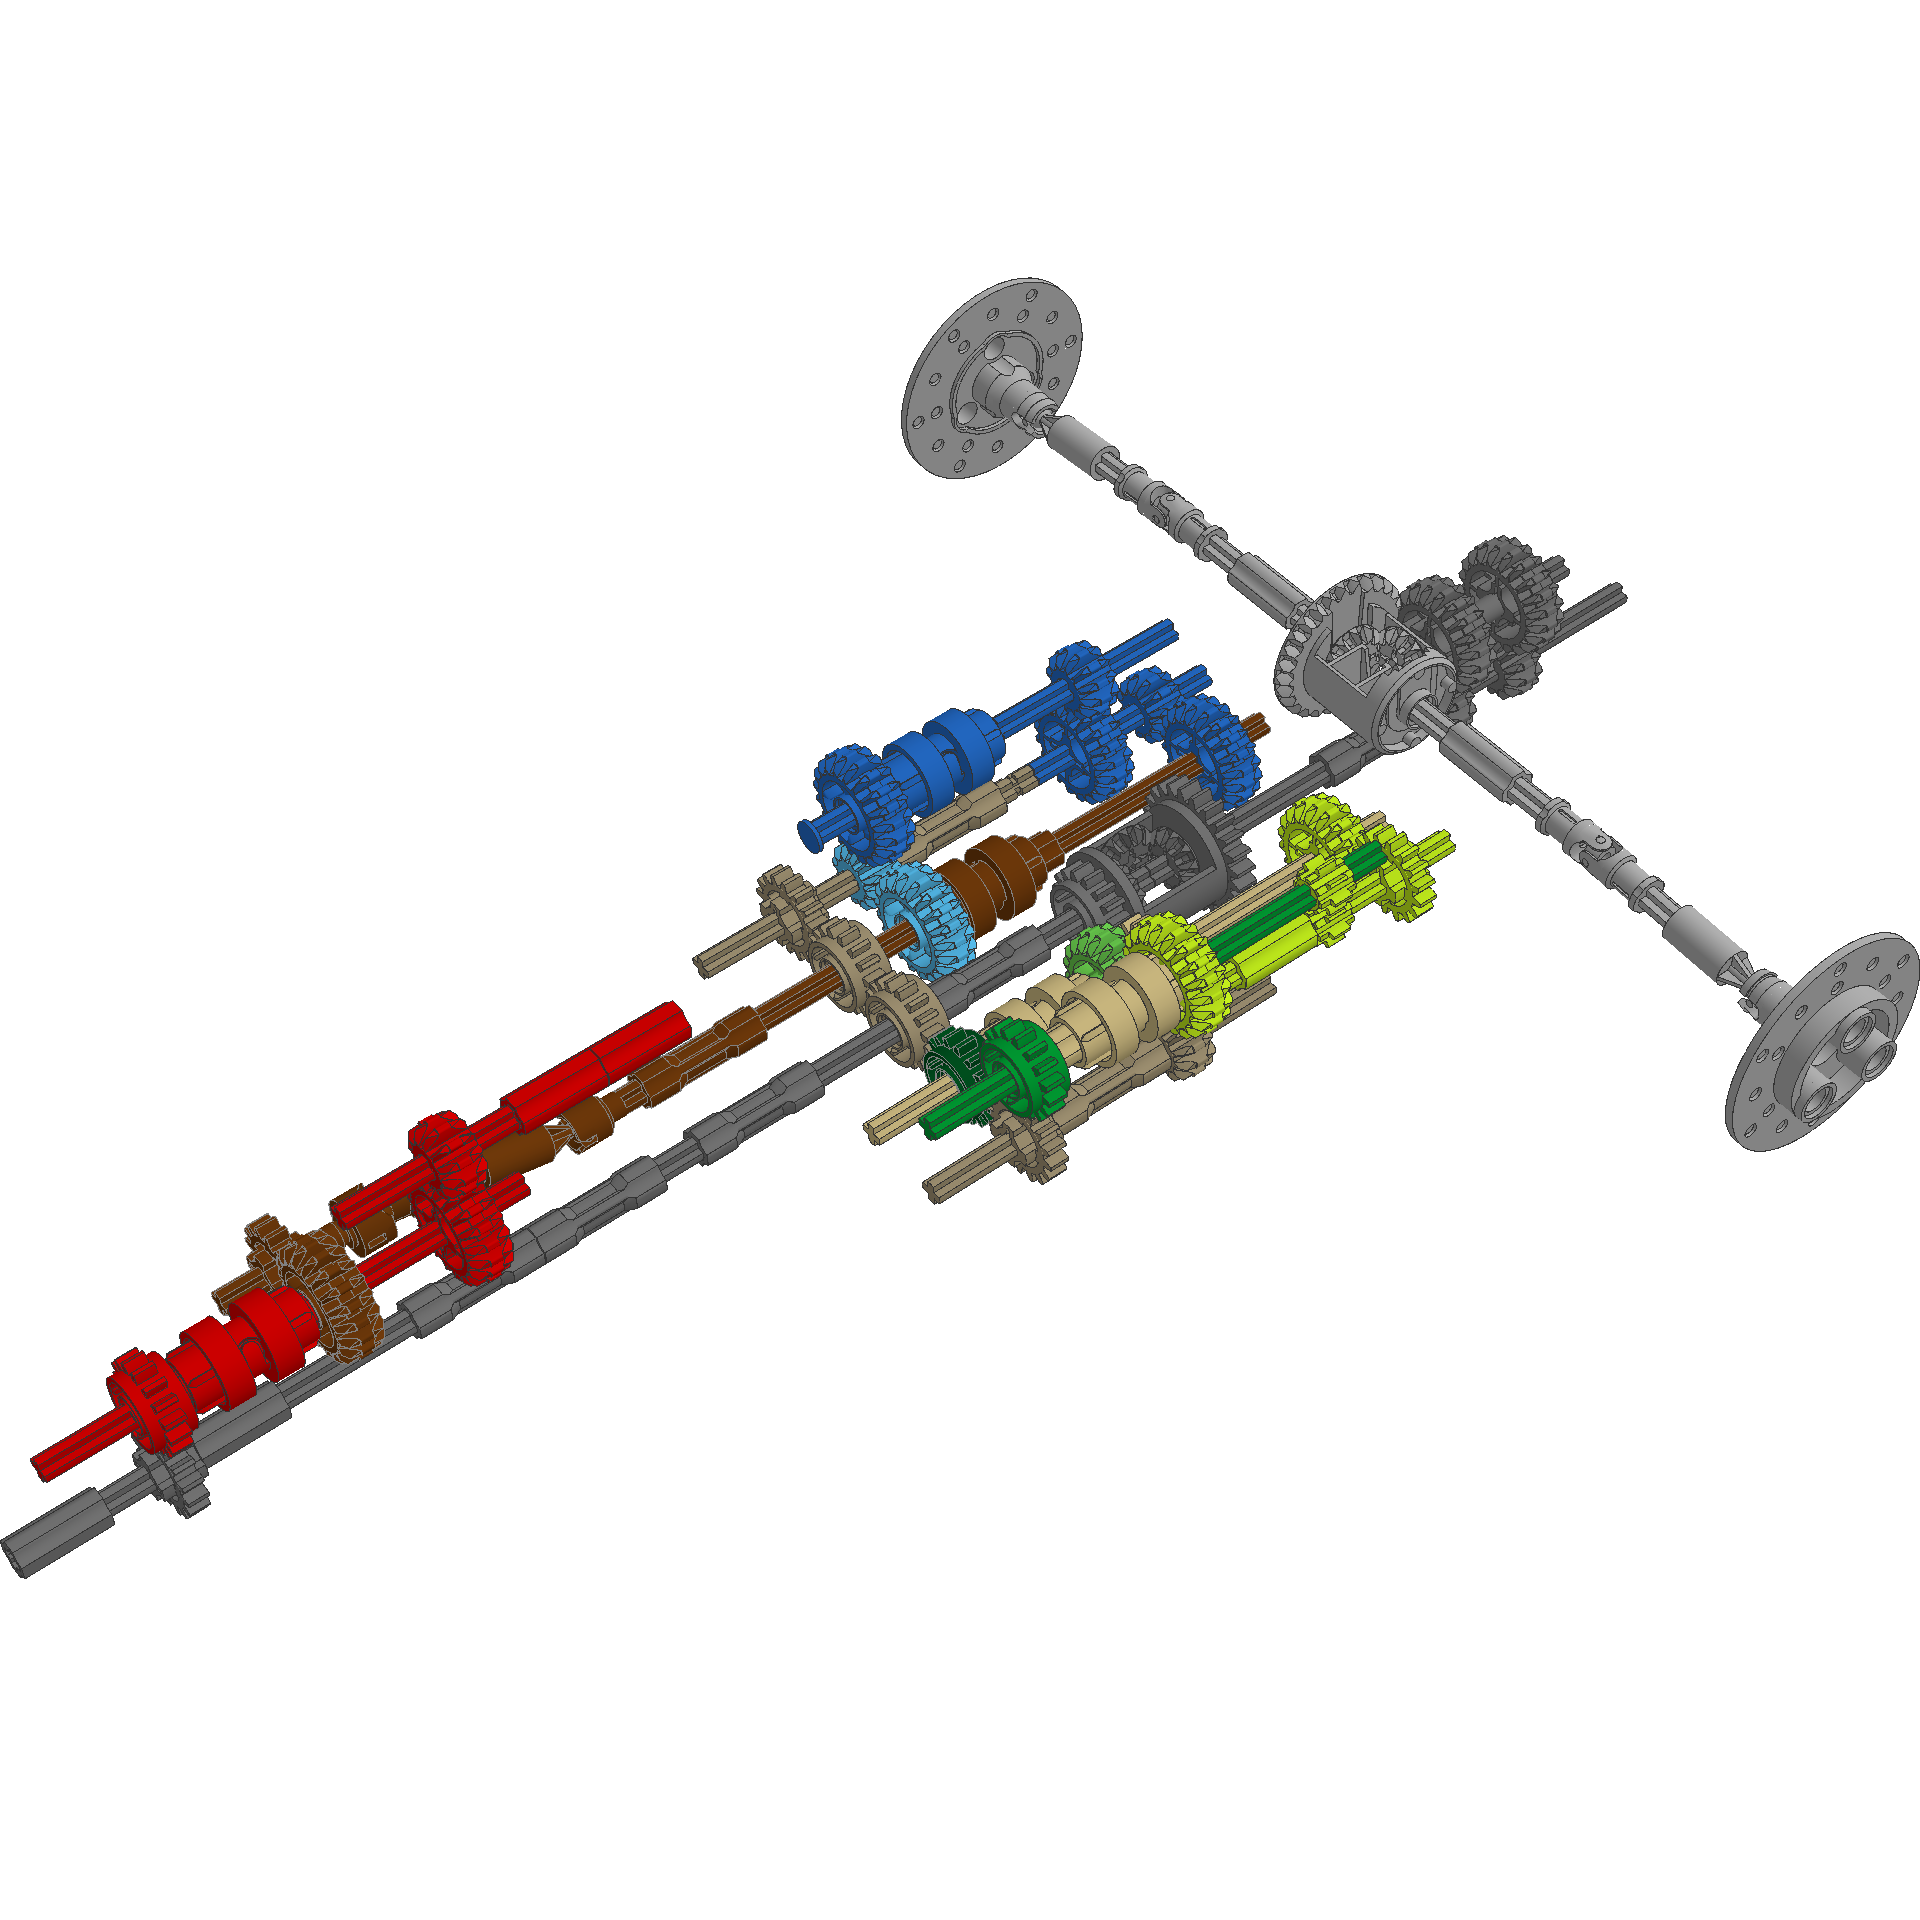 Gearbox-Gearbox%20new%20coloured.png